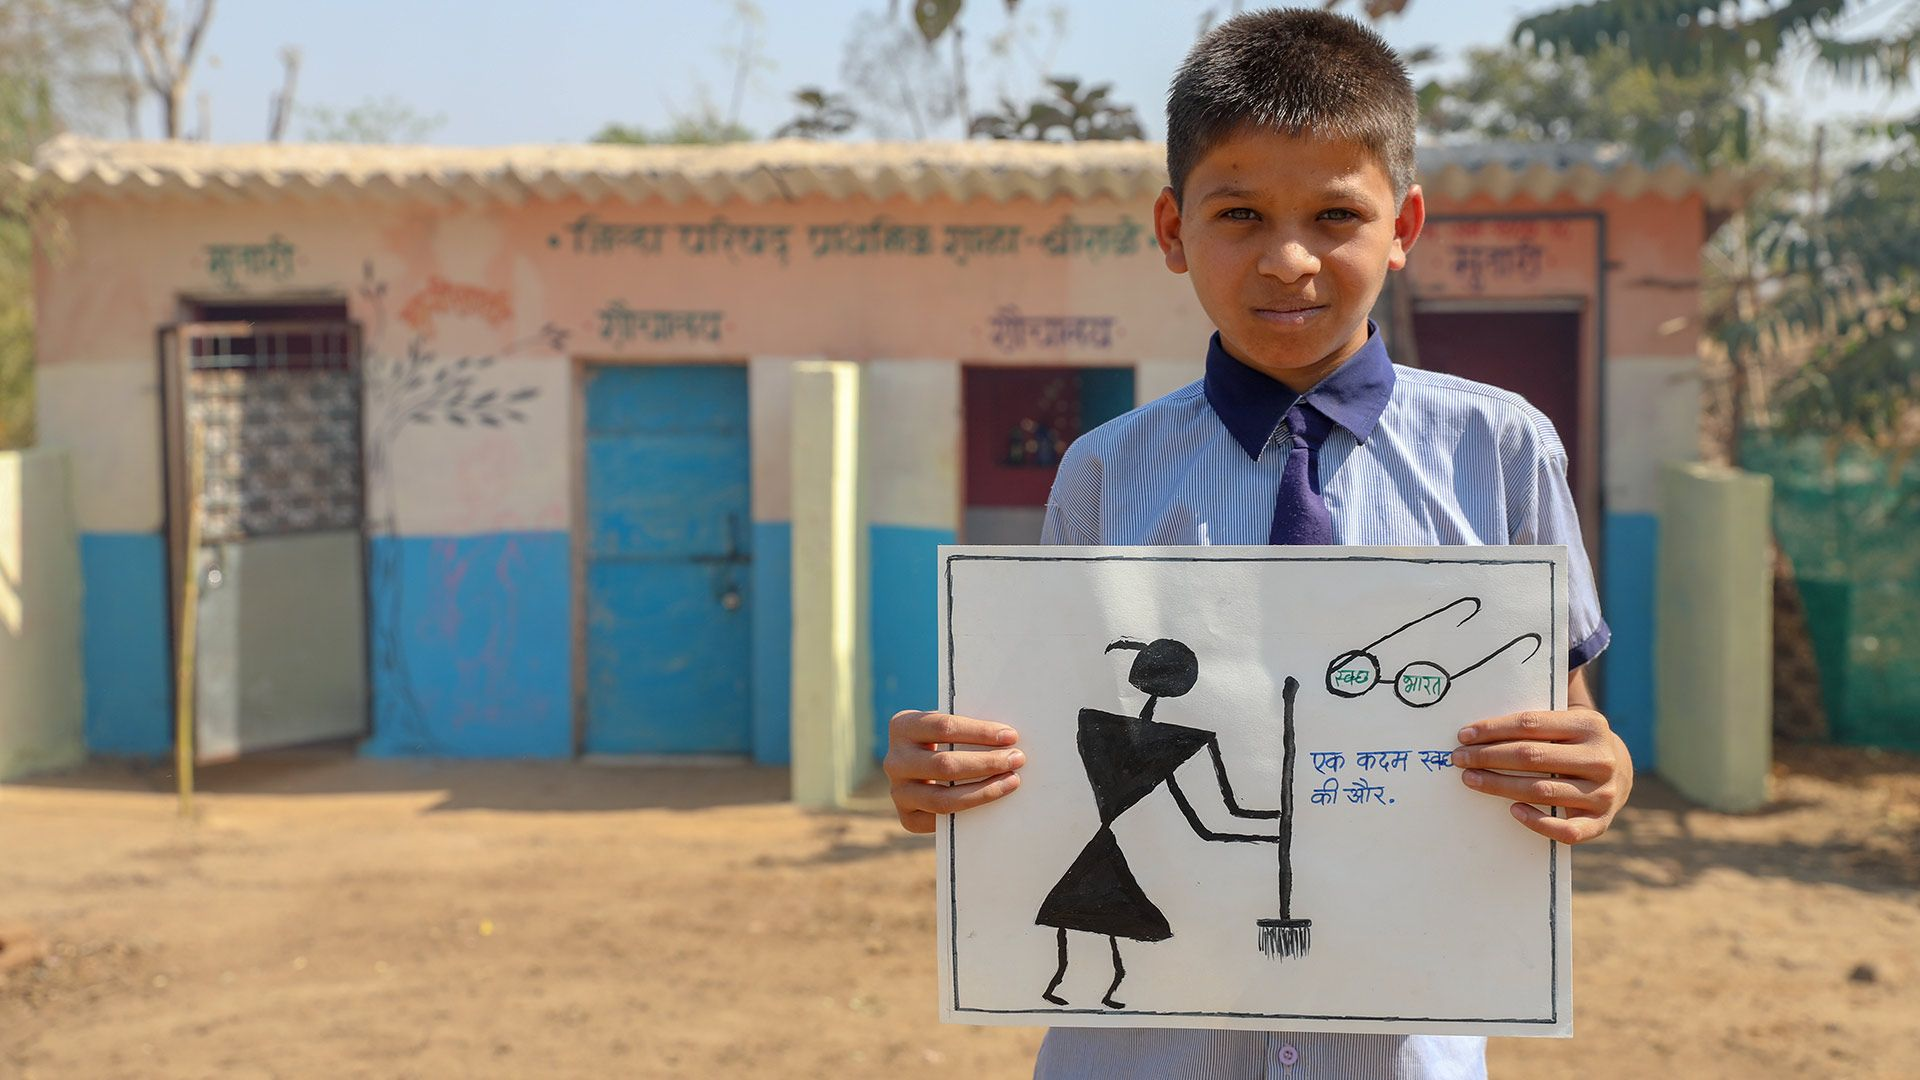 A young schoolboy outside a toilet in India holds up a poster about keeping toilets clean